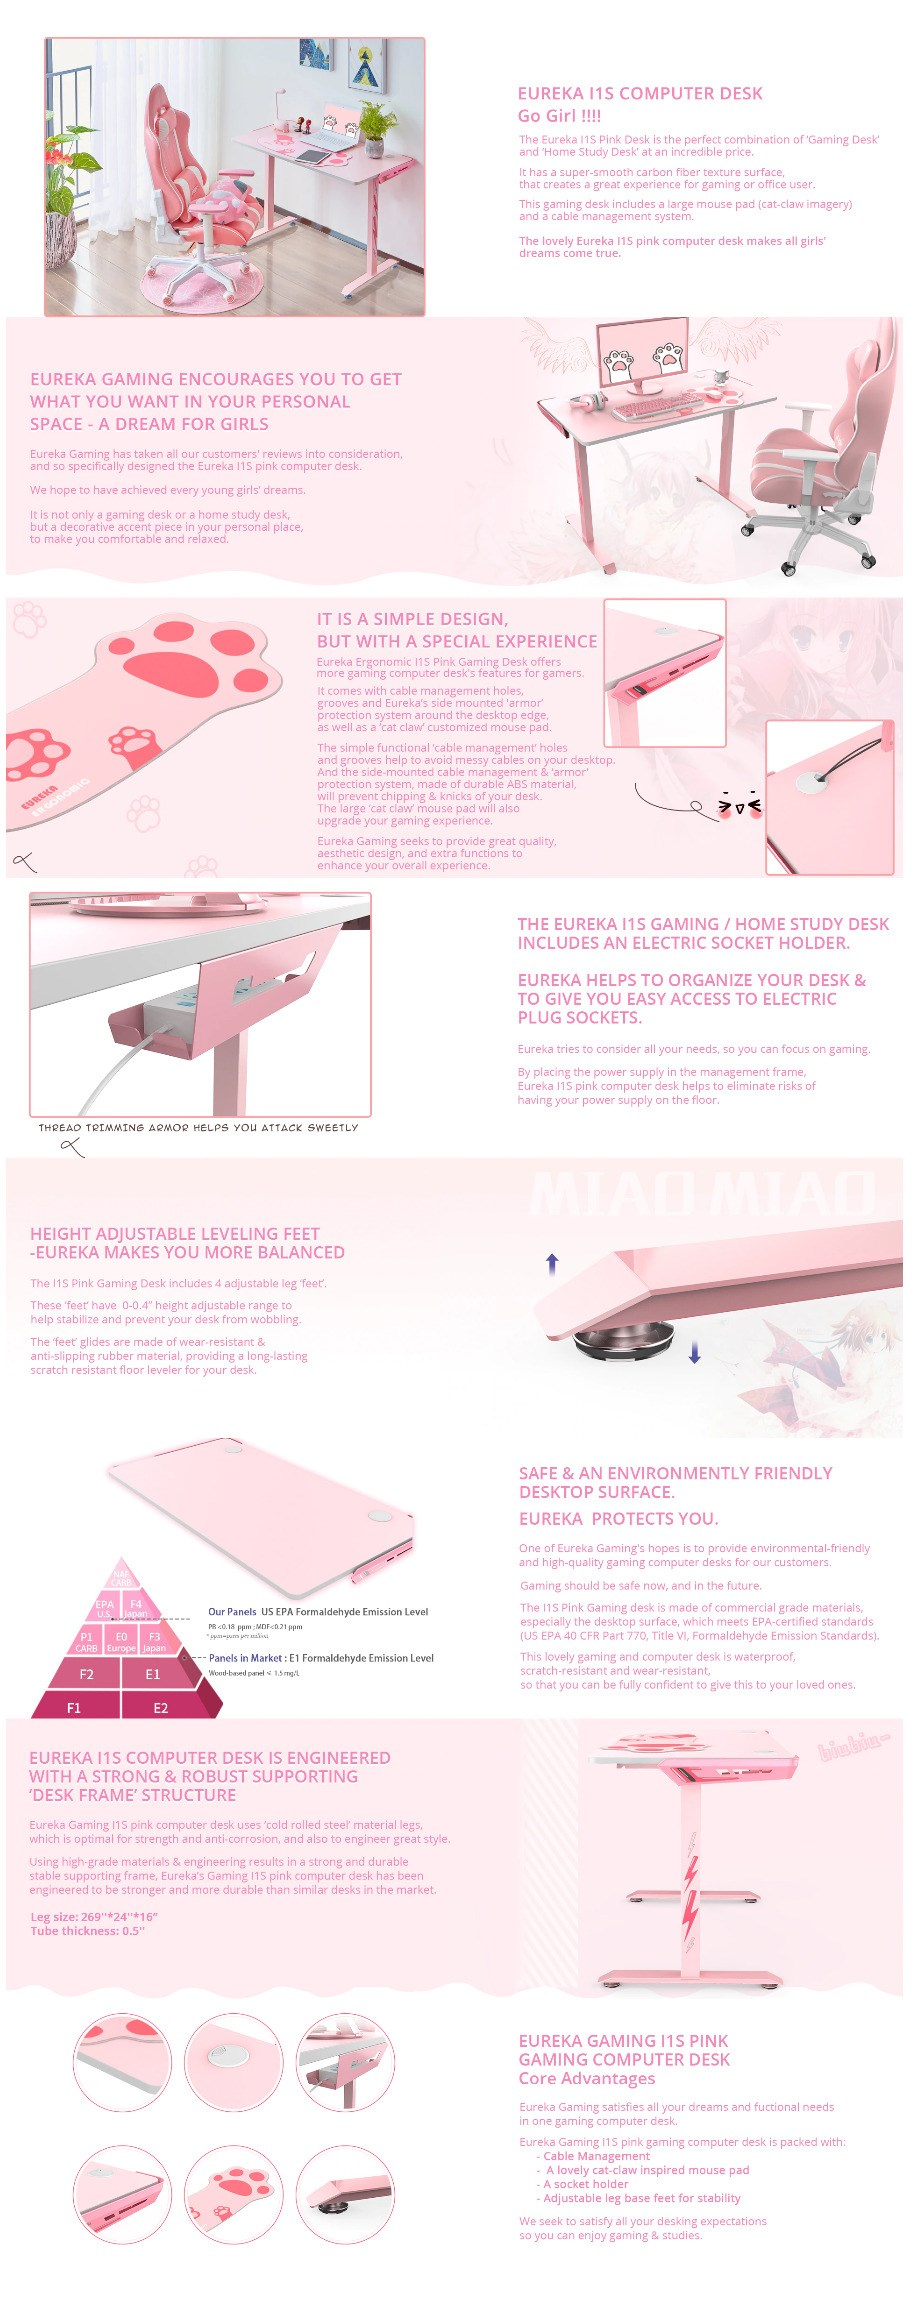 eureka_ergonomic_i1s_45_gaming_desk_pink_ac34695_4.jpg